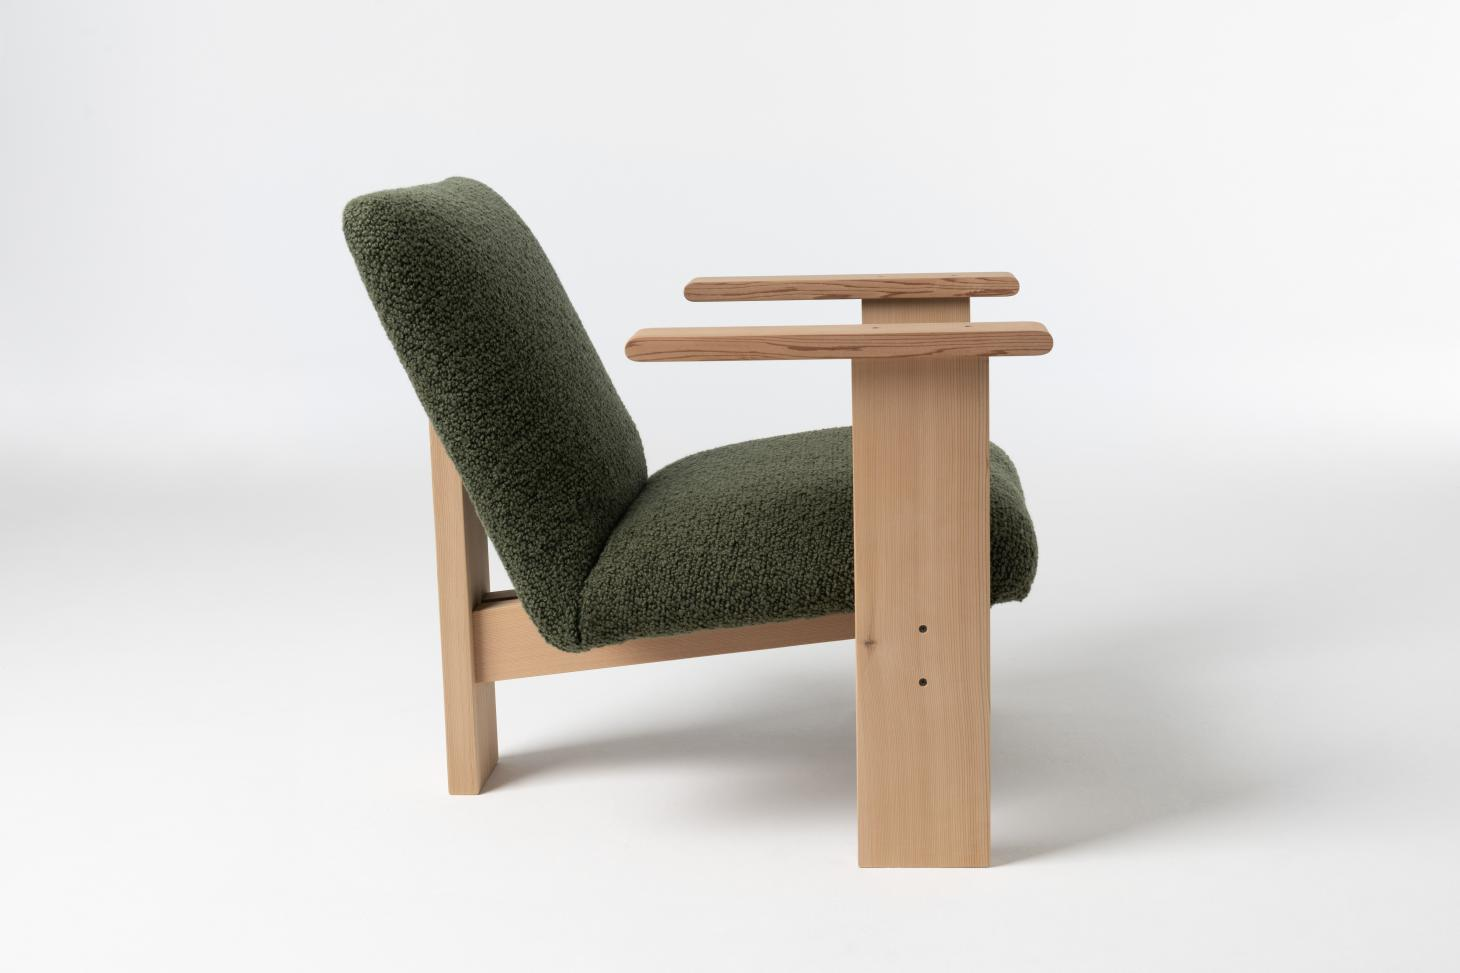 Armchair with wooden frame and green upholstered seat and back